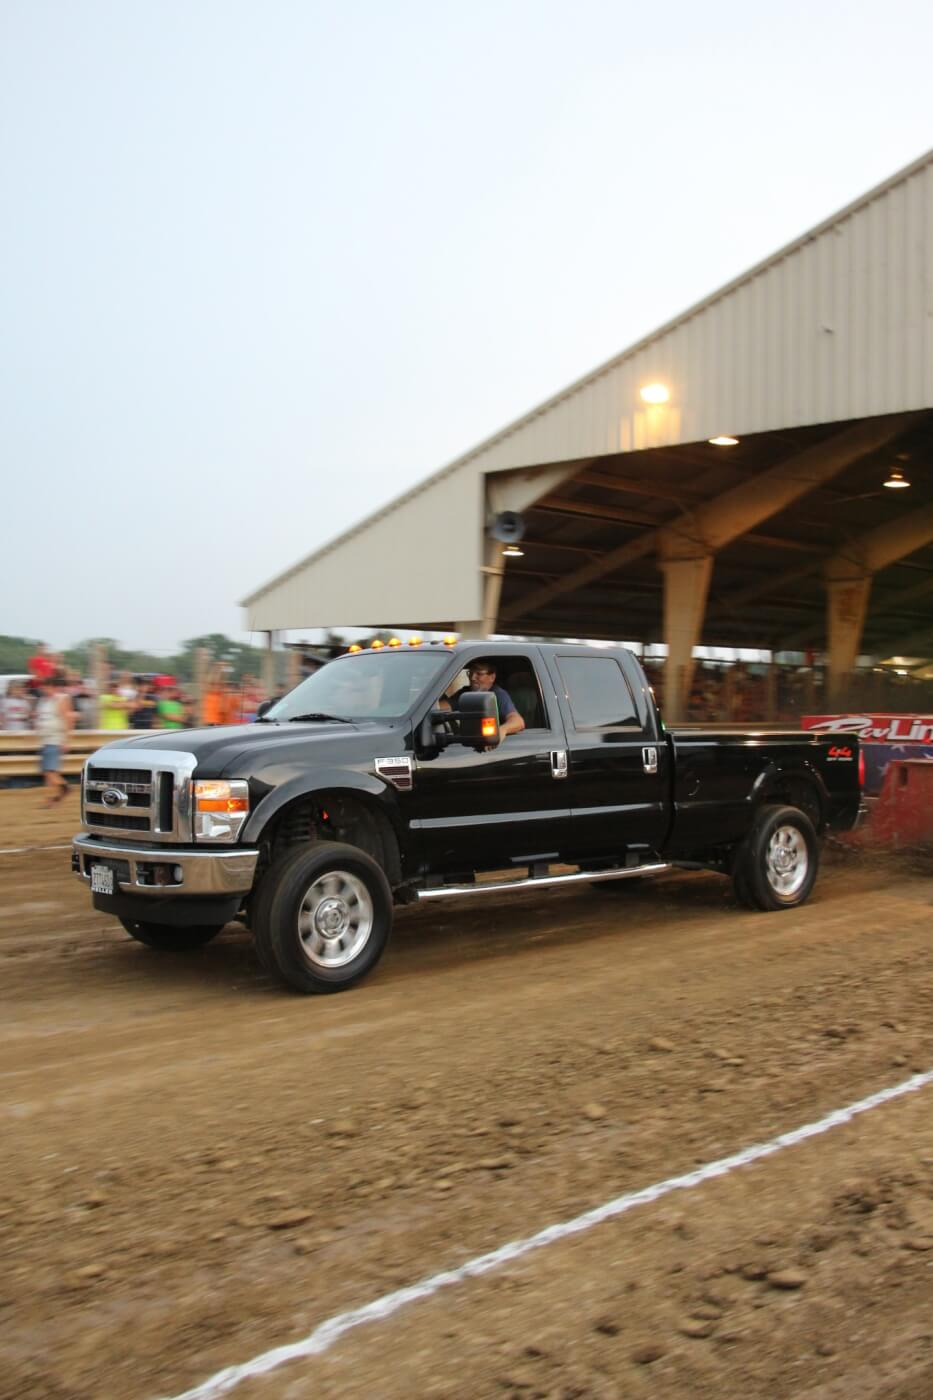 As stated, stock turbo rules definitely benefitted the 6.4L Power Strokes that were there to compete (thanks to the factory compound turbocharger arrangement). Here, Dennis Burk and his tune-only '08 F-350 storm to a distance of 268 feet and change: good enough for Third Place.